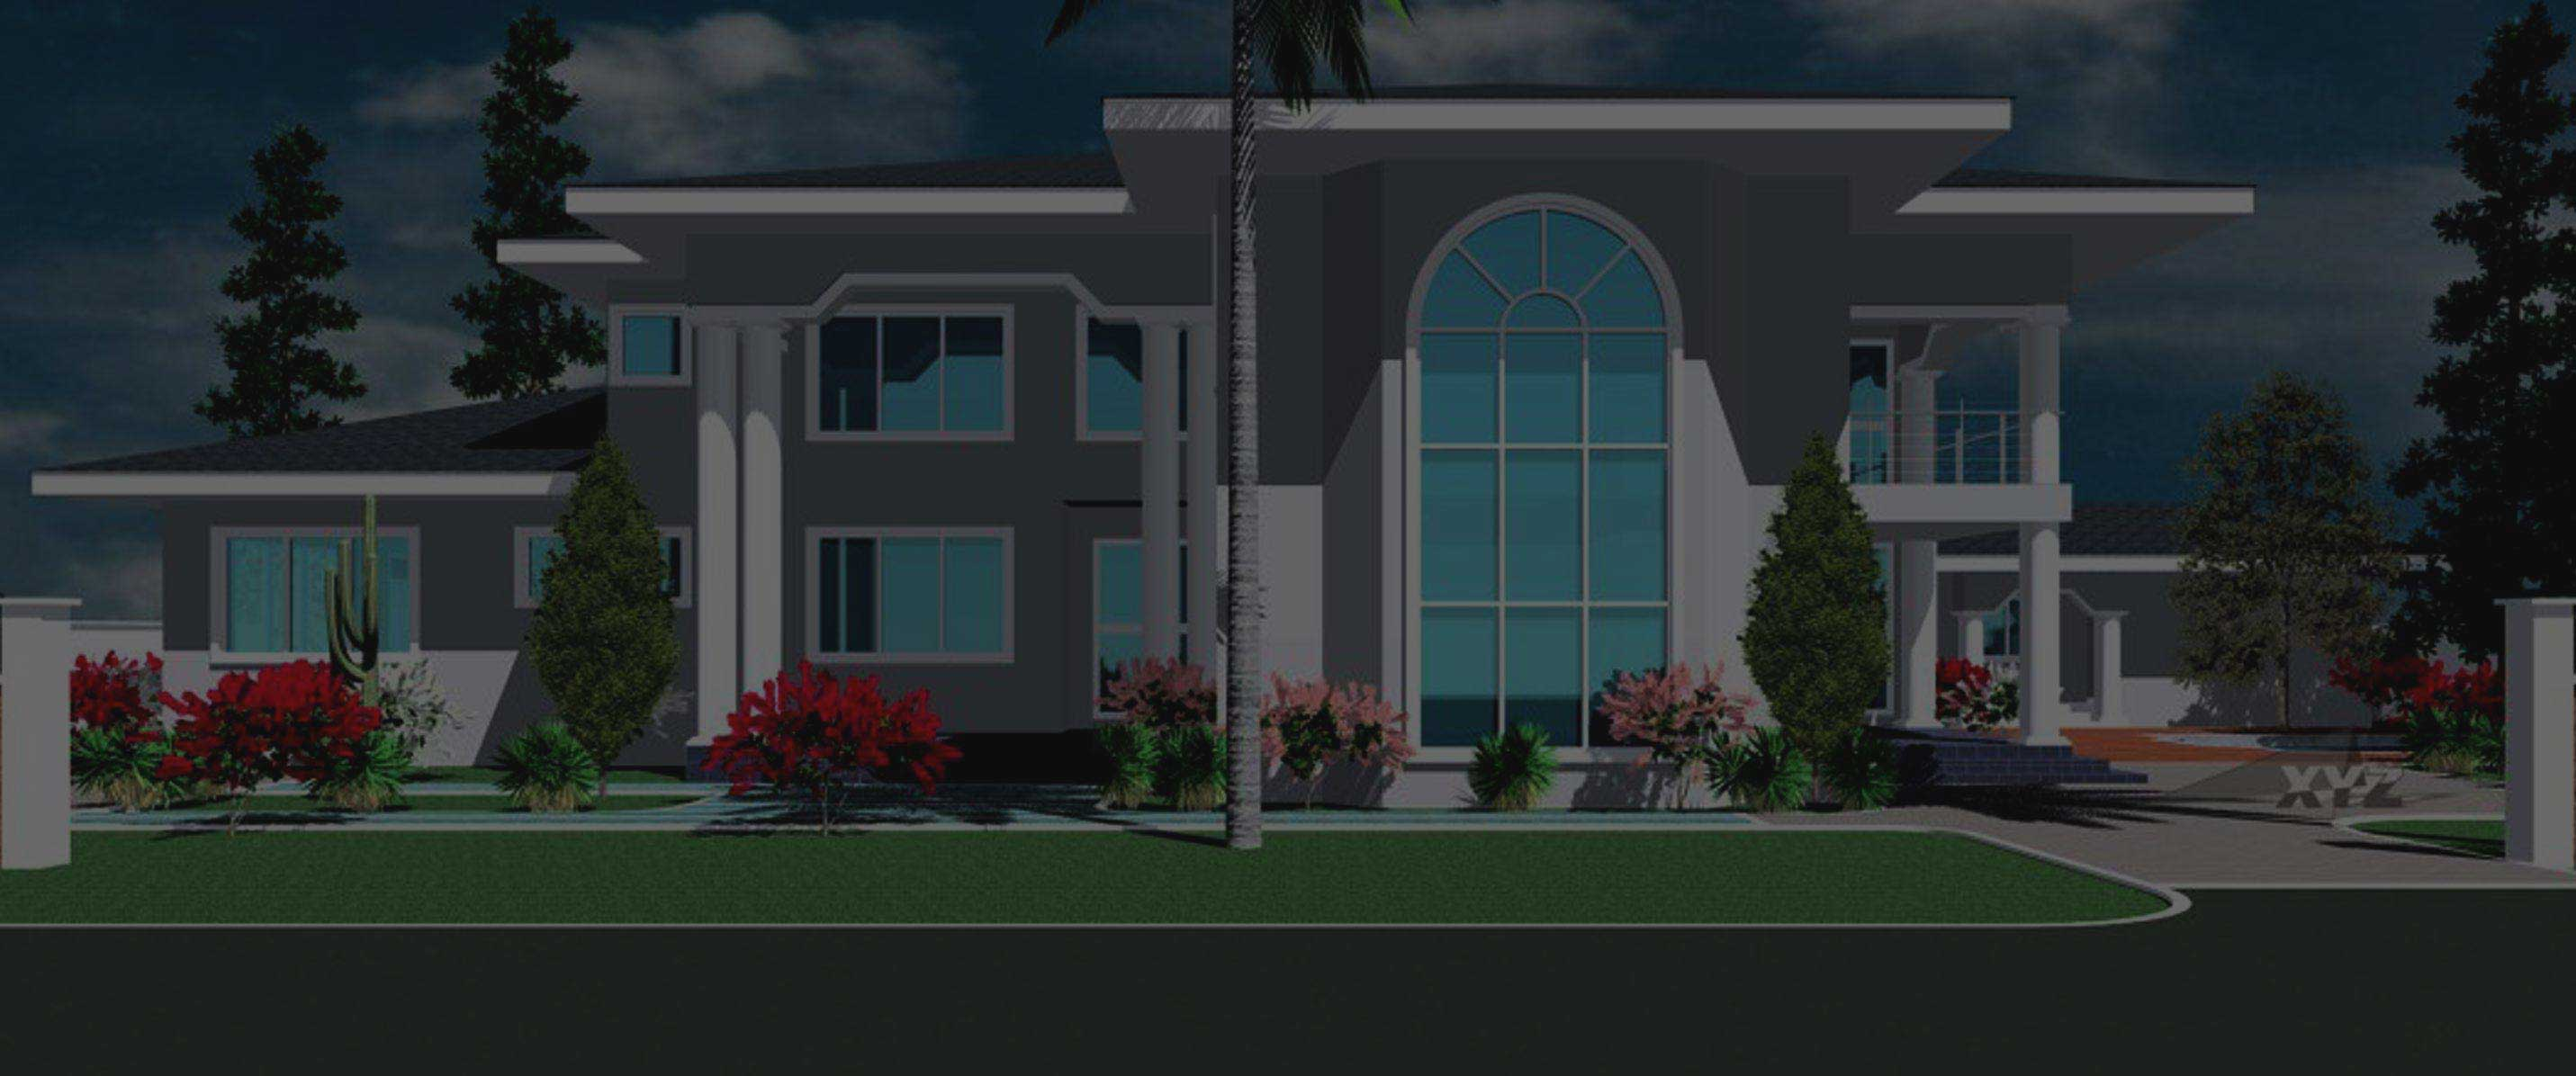 Four Bedroom House Floor Plans Ghana House Plans Africa House Plans Ghana Architects